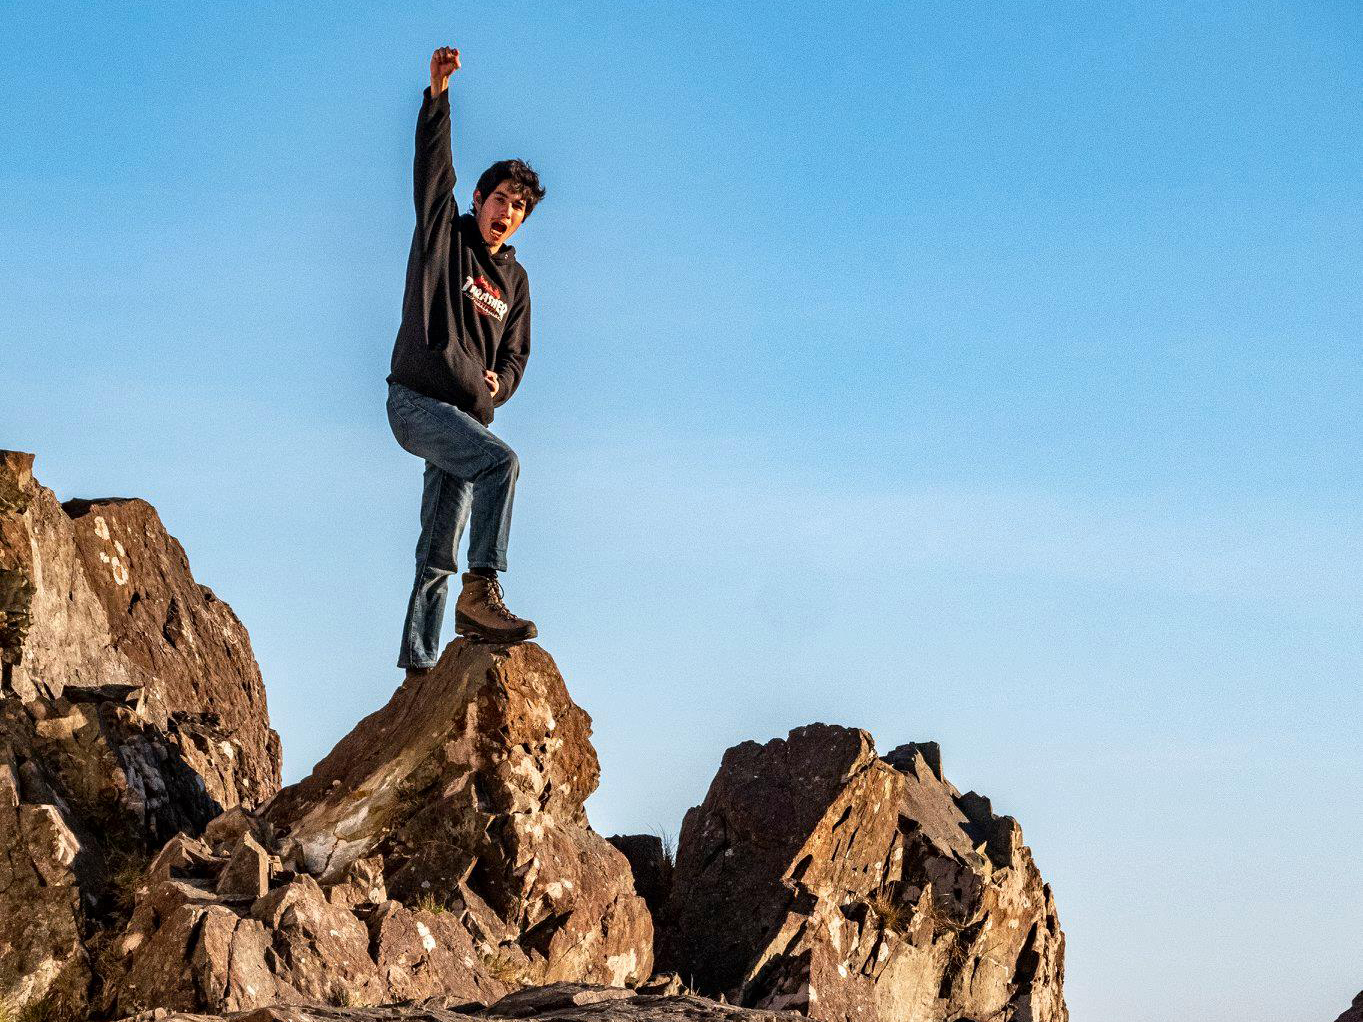 Young man standing atop mountain